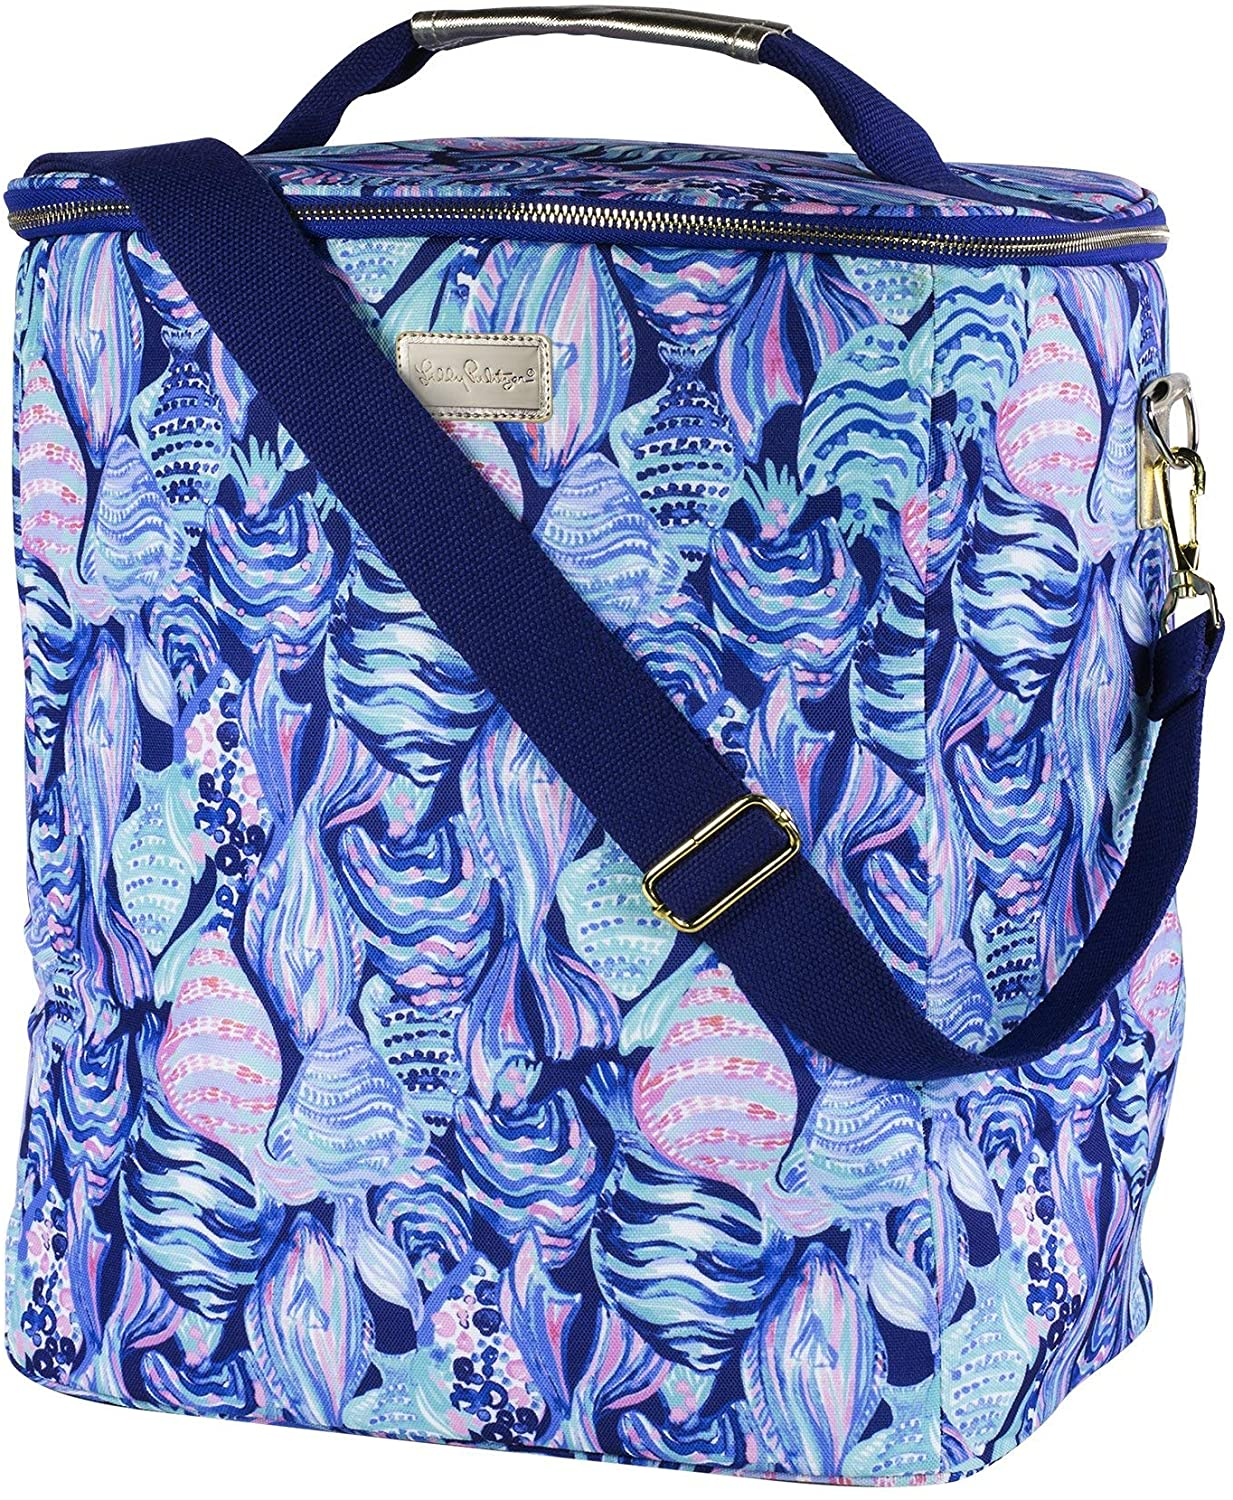 Lilly Pulitzer Insulated Wine Carrier Soft Cooler with Adjustable/Removable Strap and Double Zipper Close, Holds up to 4 Bottles of Wine, Scale Up